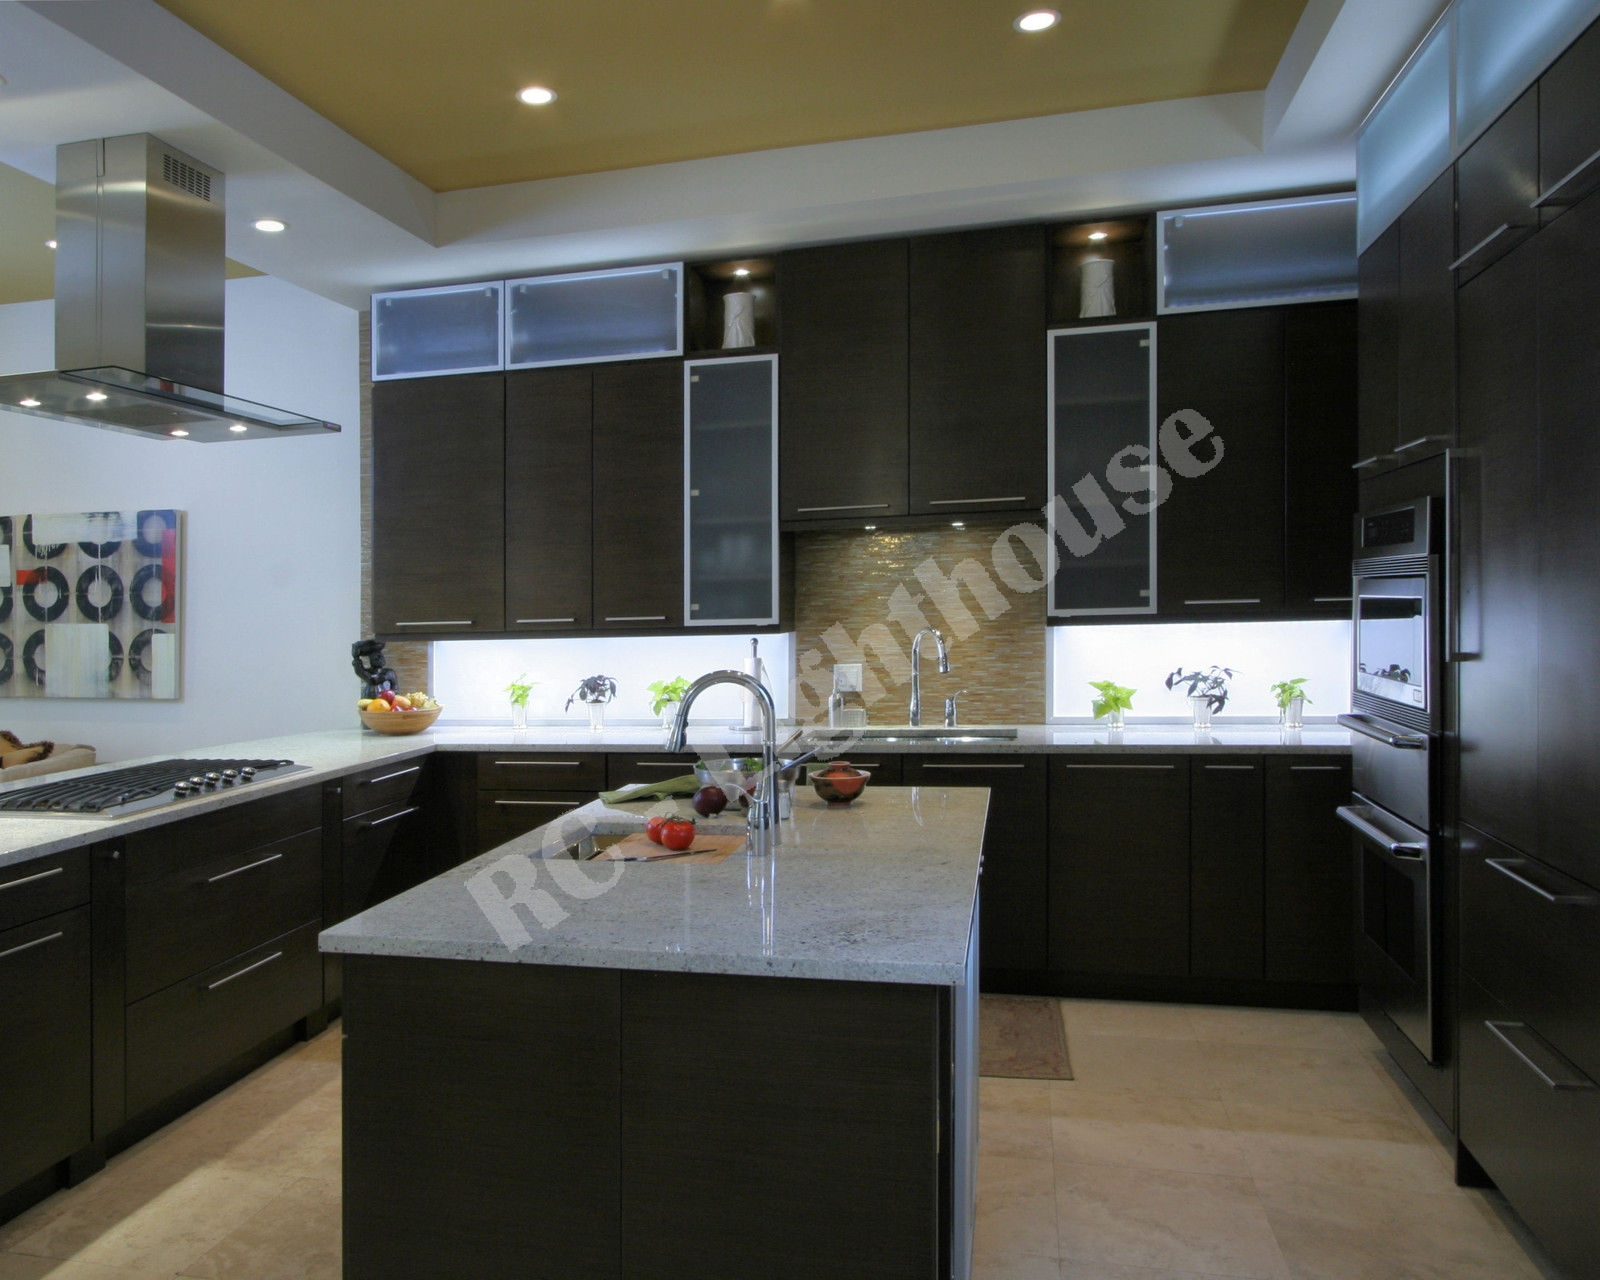 kitchen led lighting used table cabinet bedroom tv living room